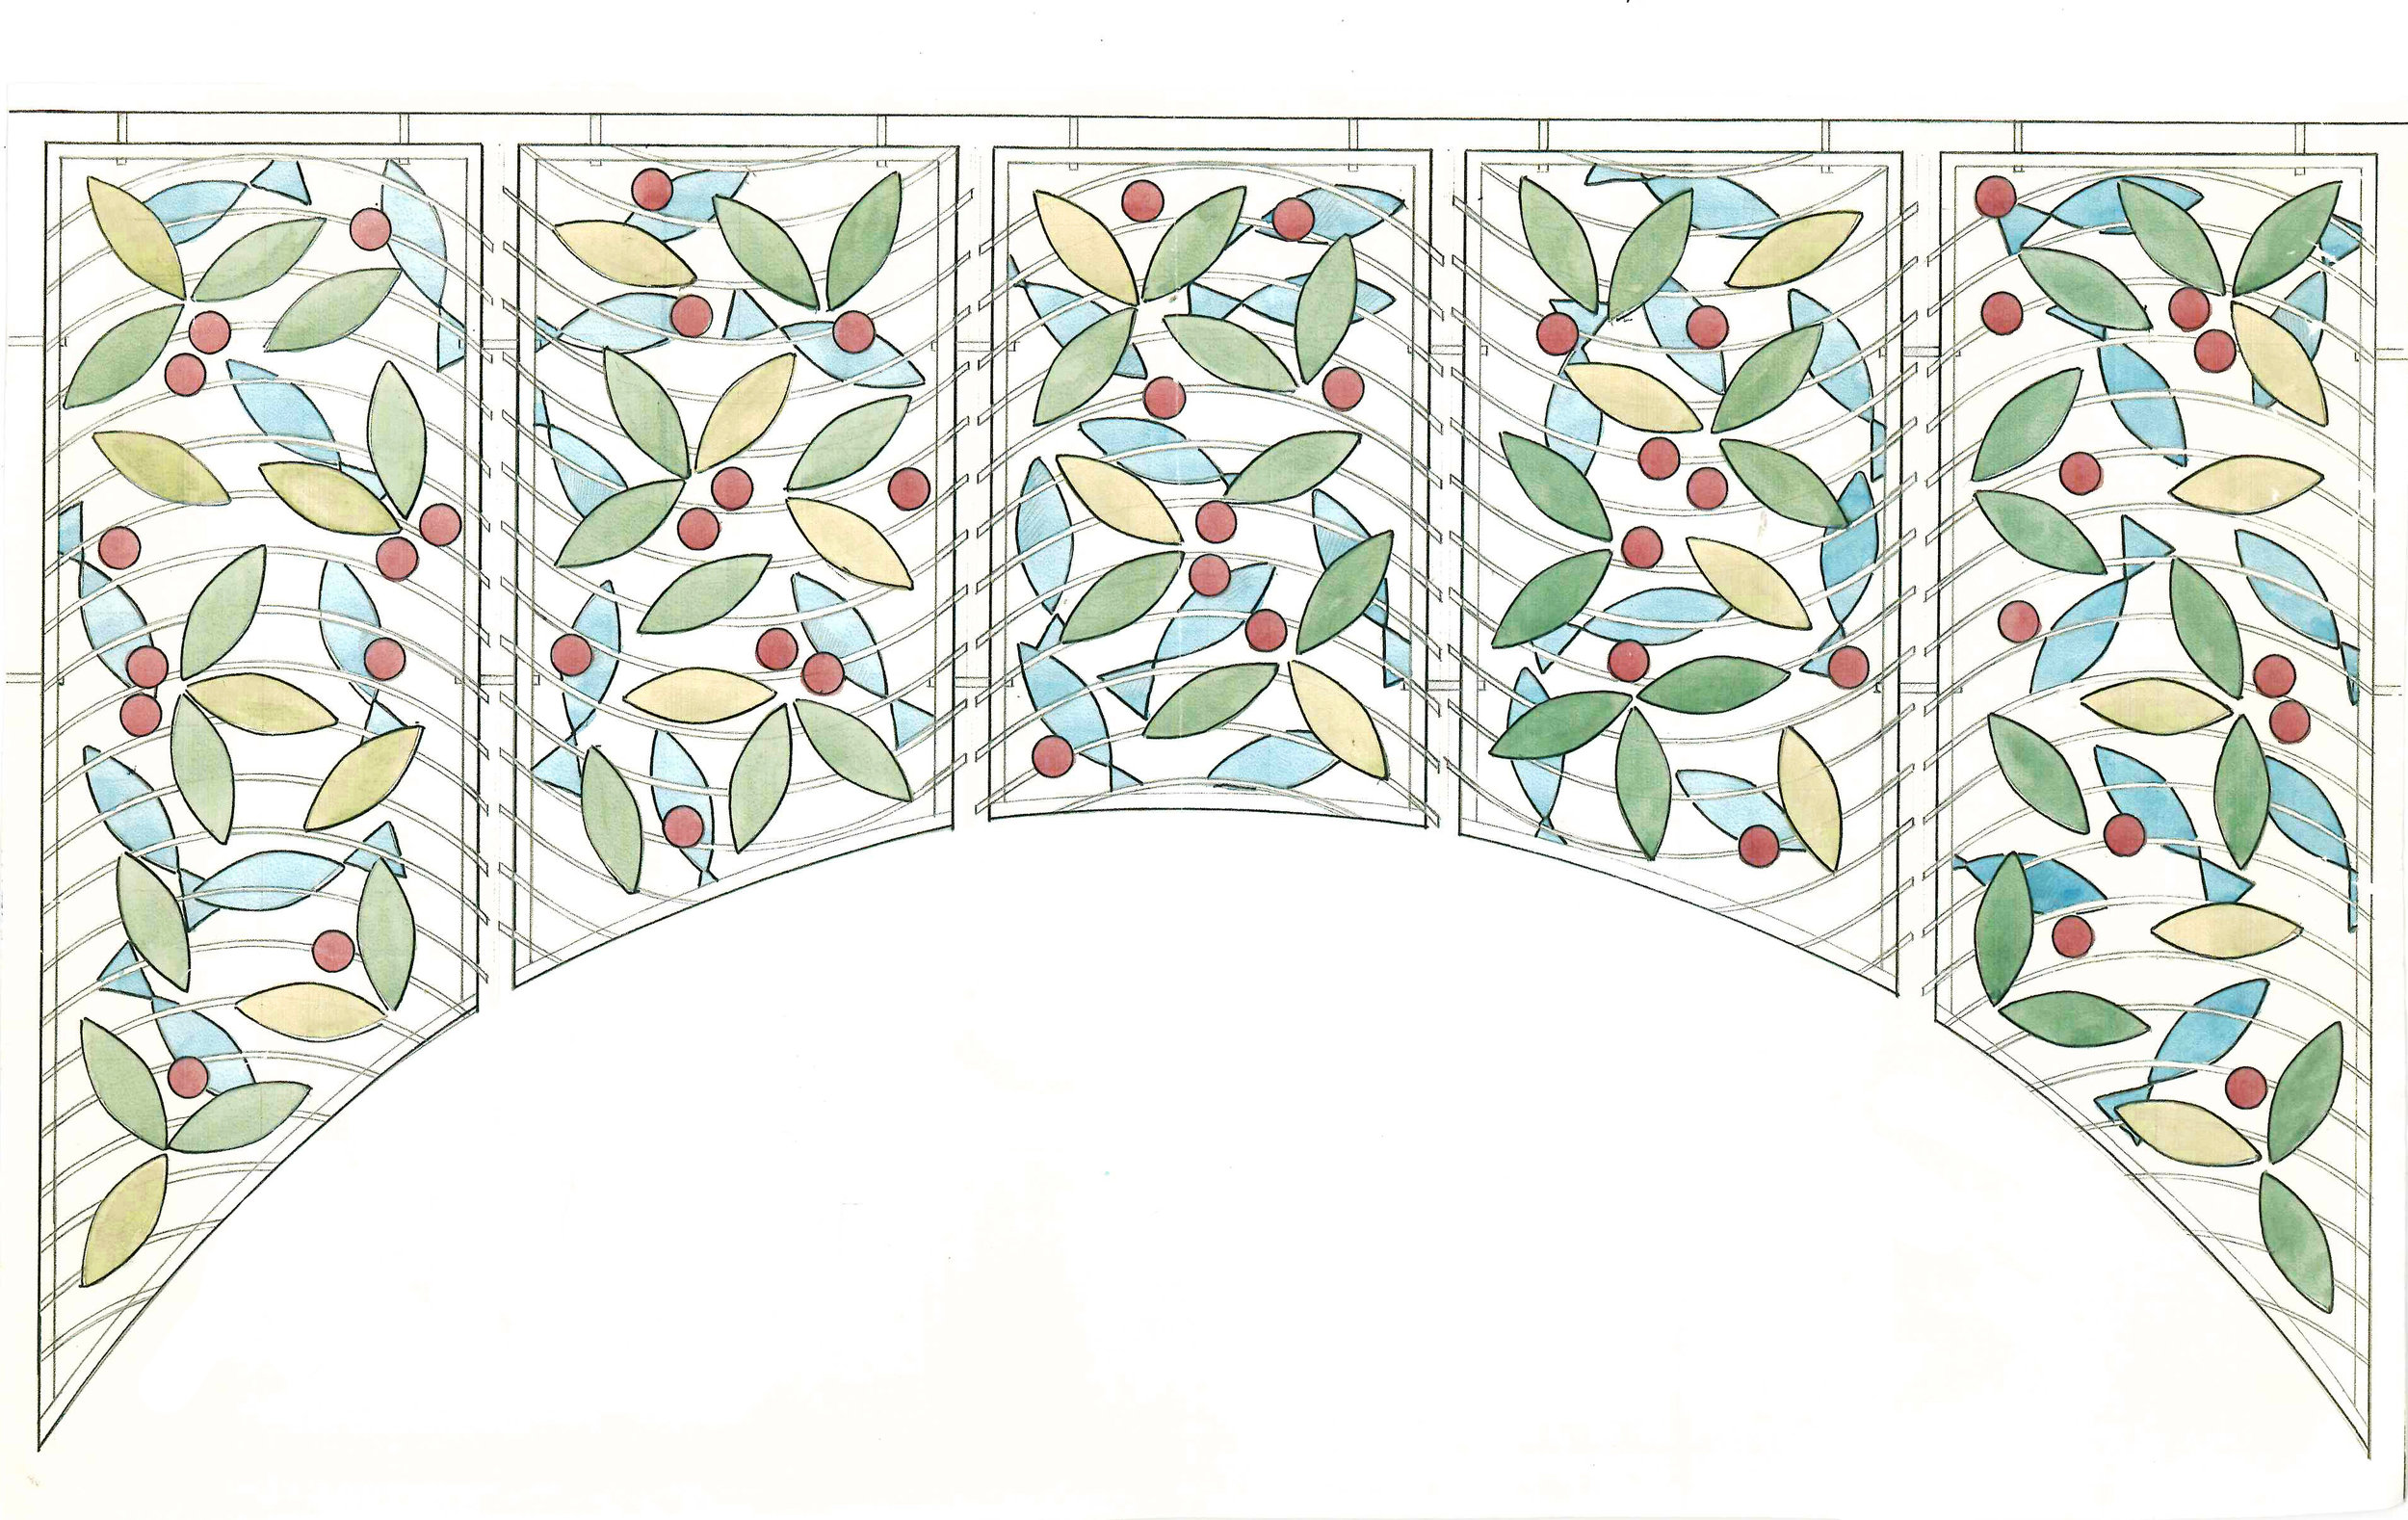 Sketch proposal for the archway.